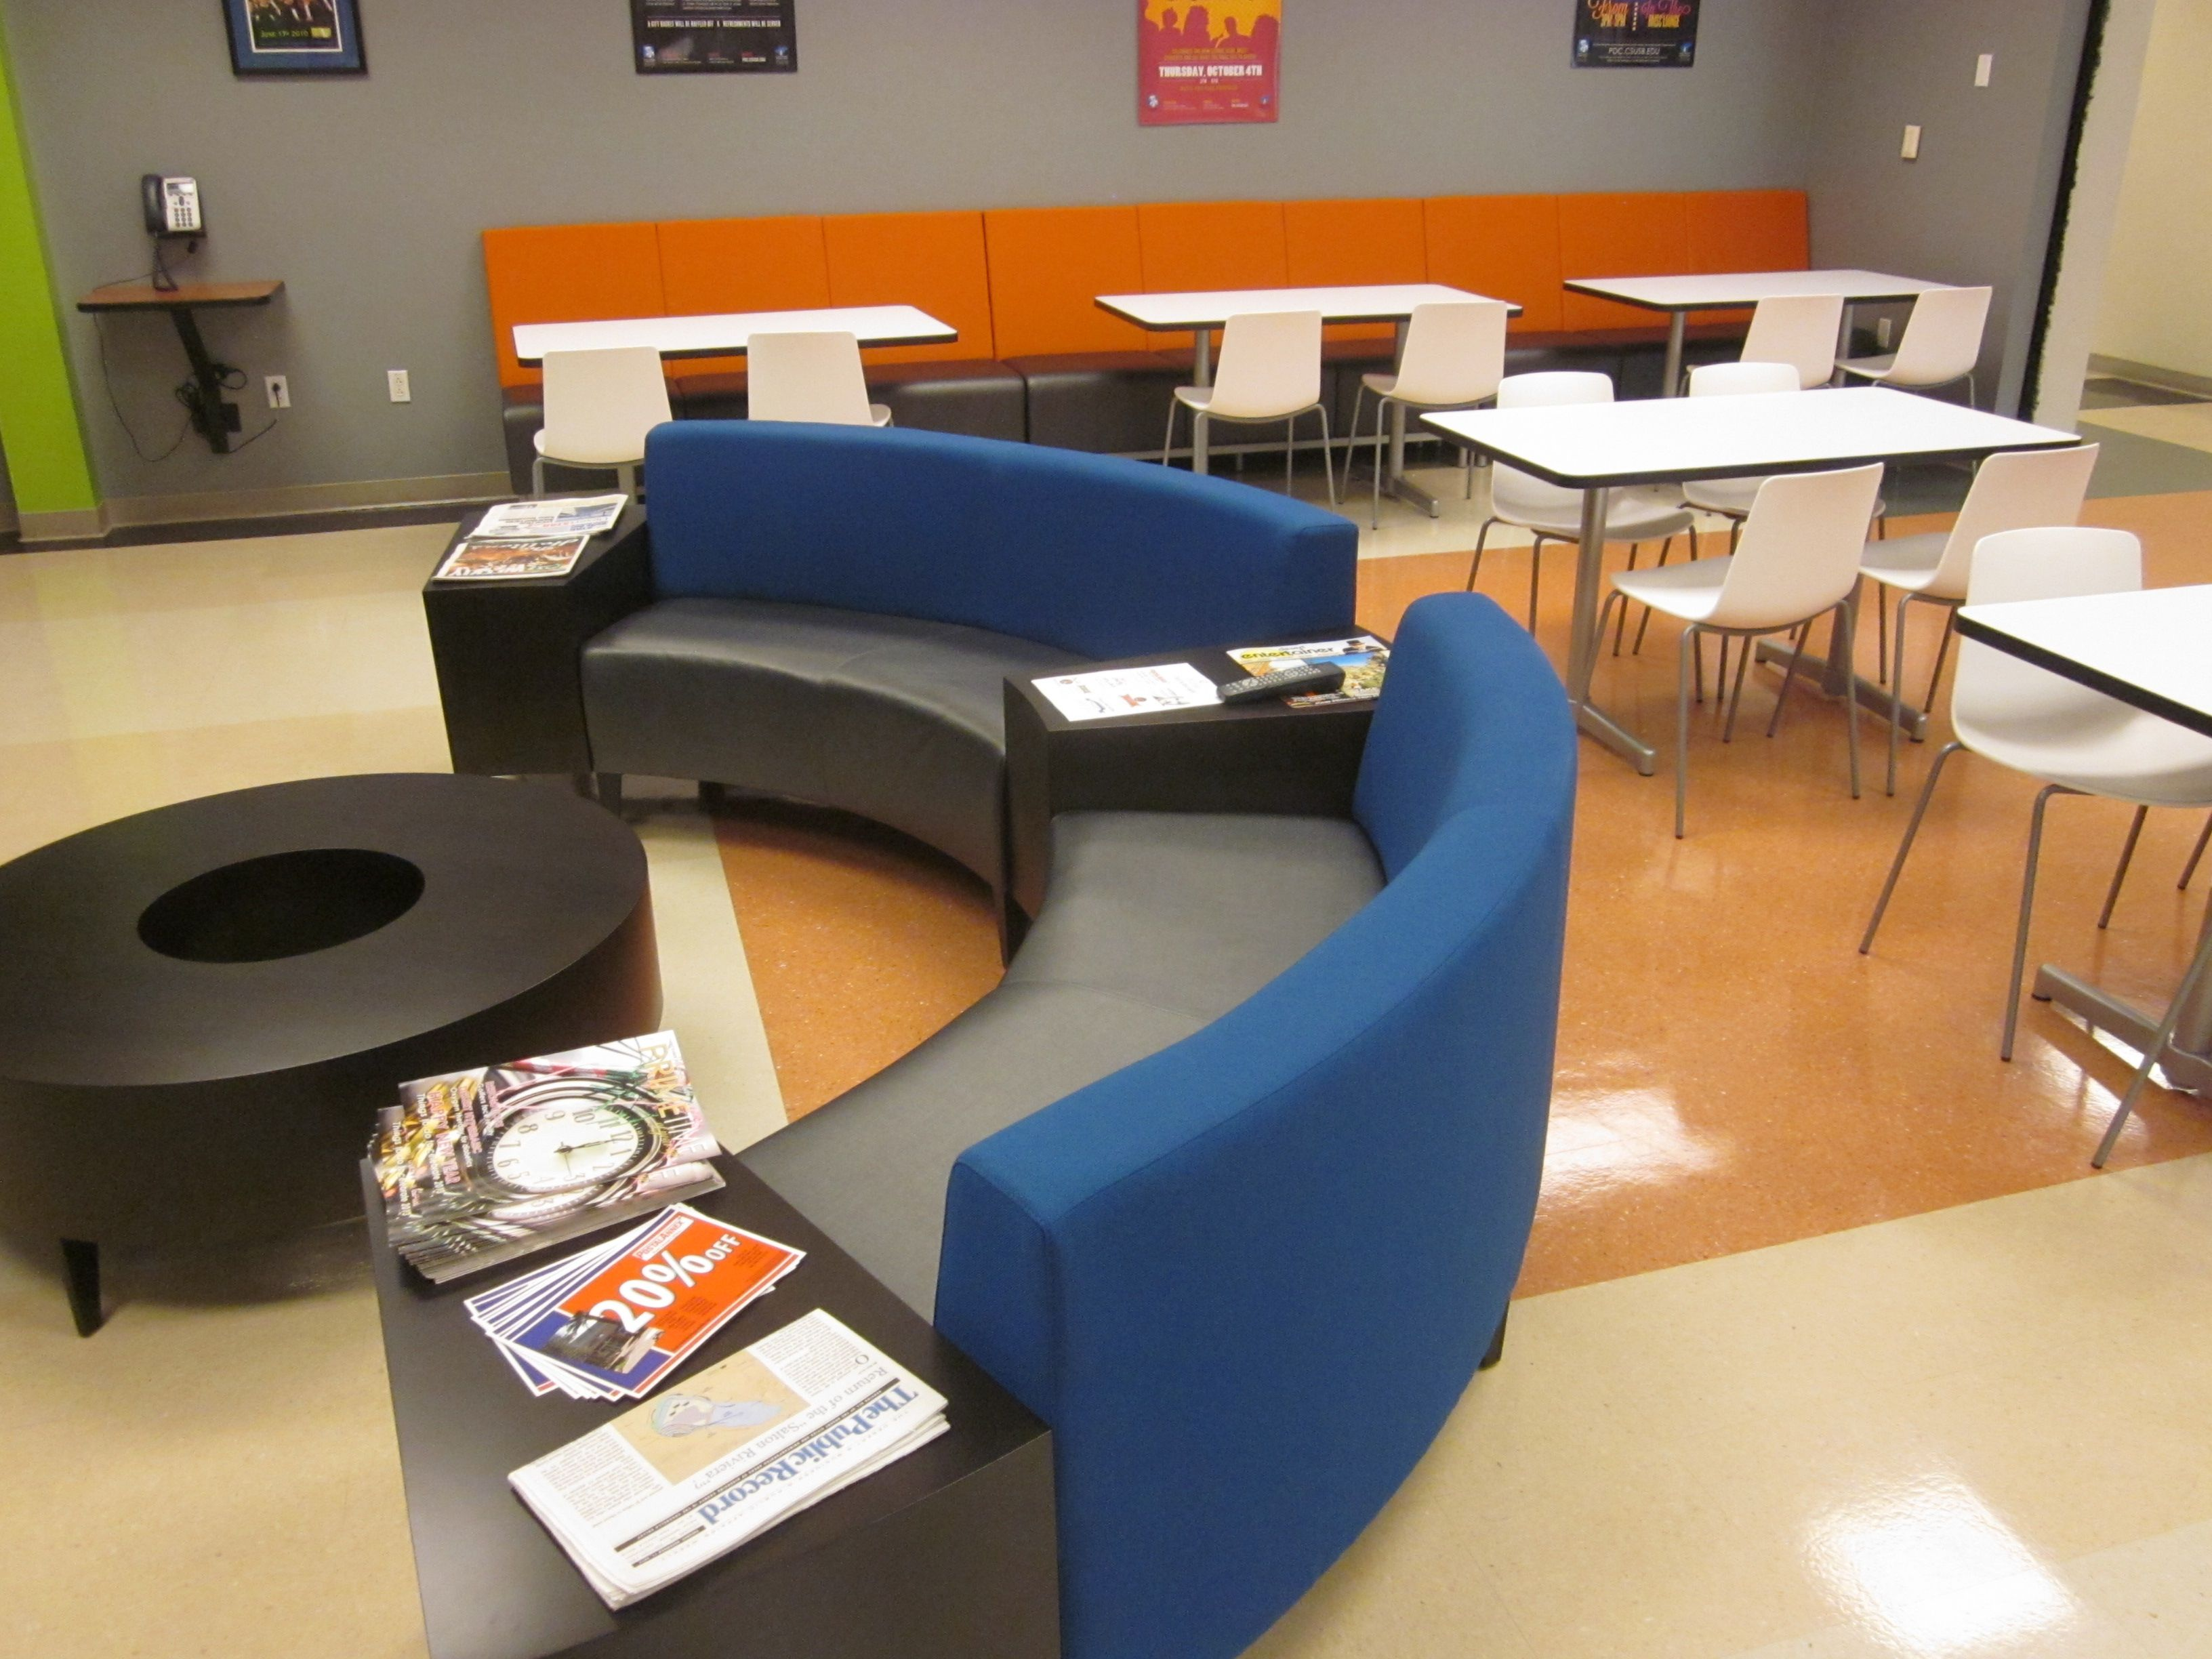 Coalesse Circa Seating and Tables create a fortable lounge